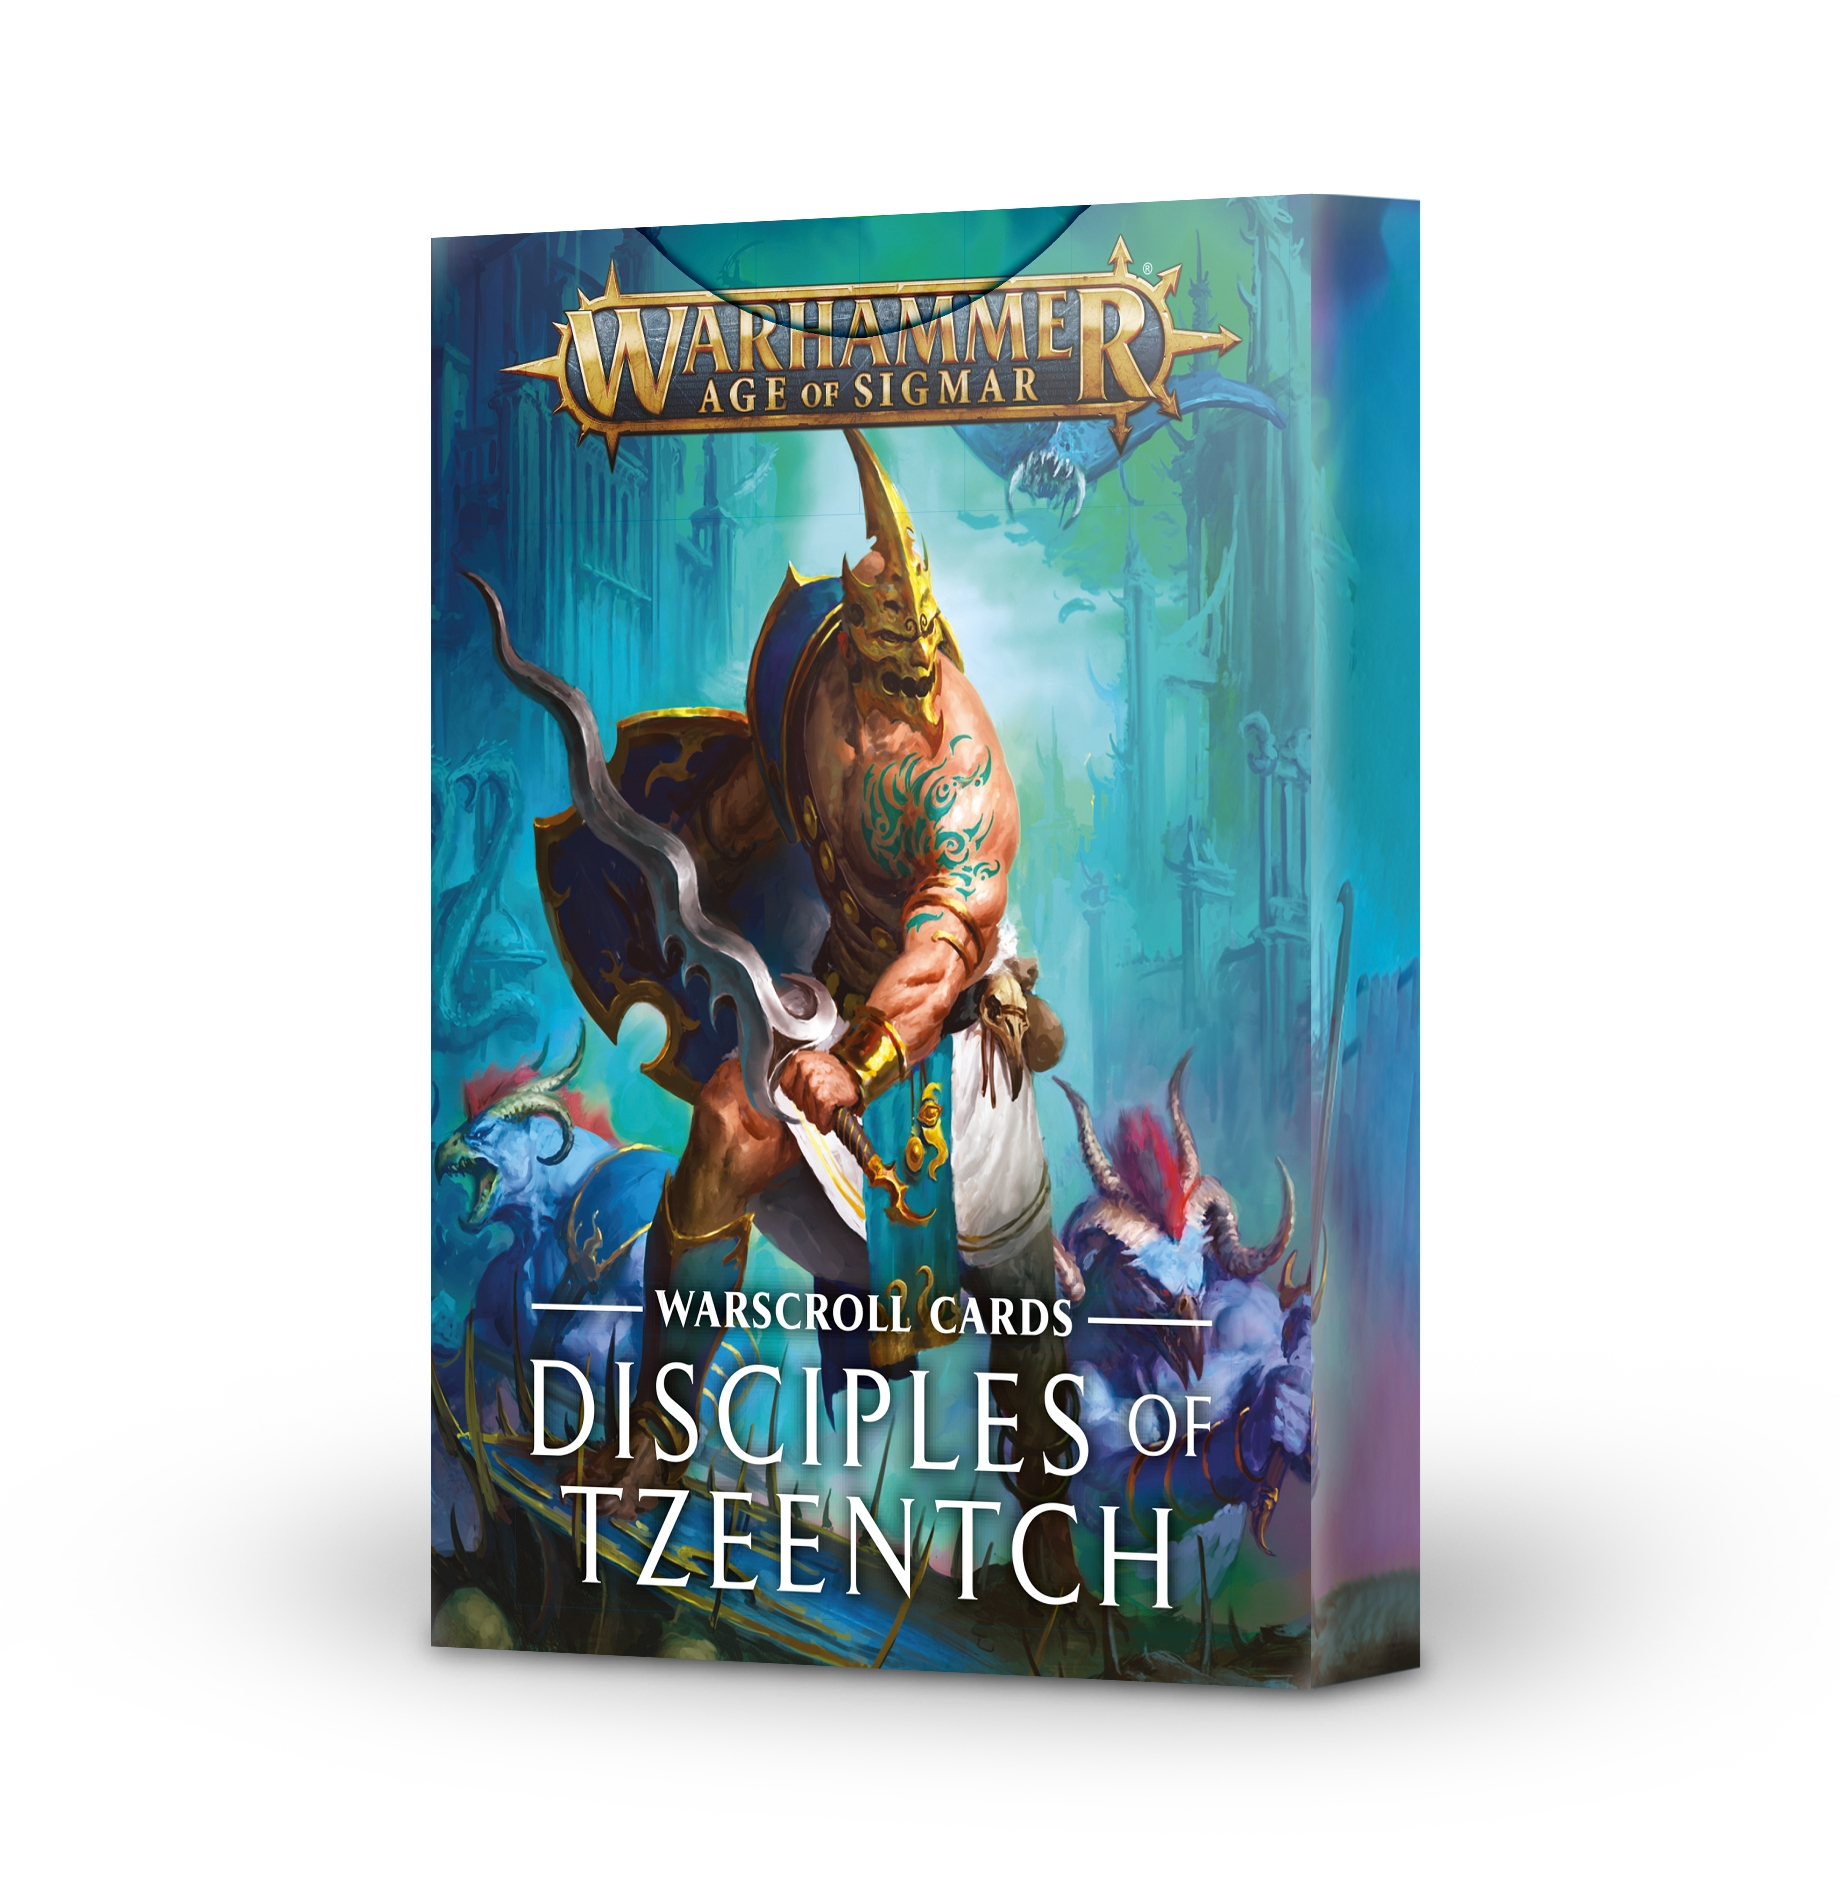 Warhammer Age of Sigmar: Warscroll Cards - DISCIPLES OF TZEENTCH